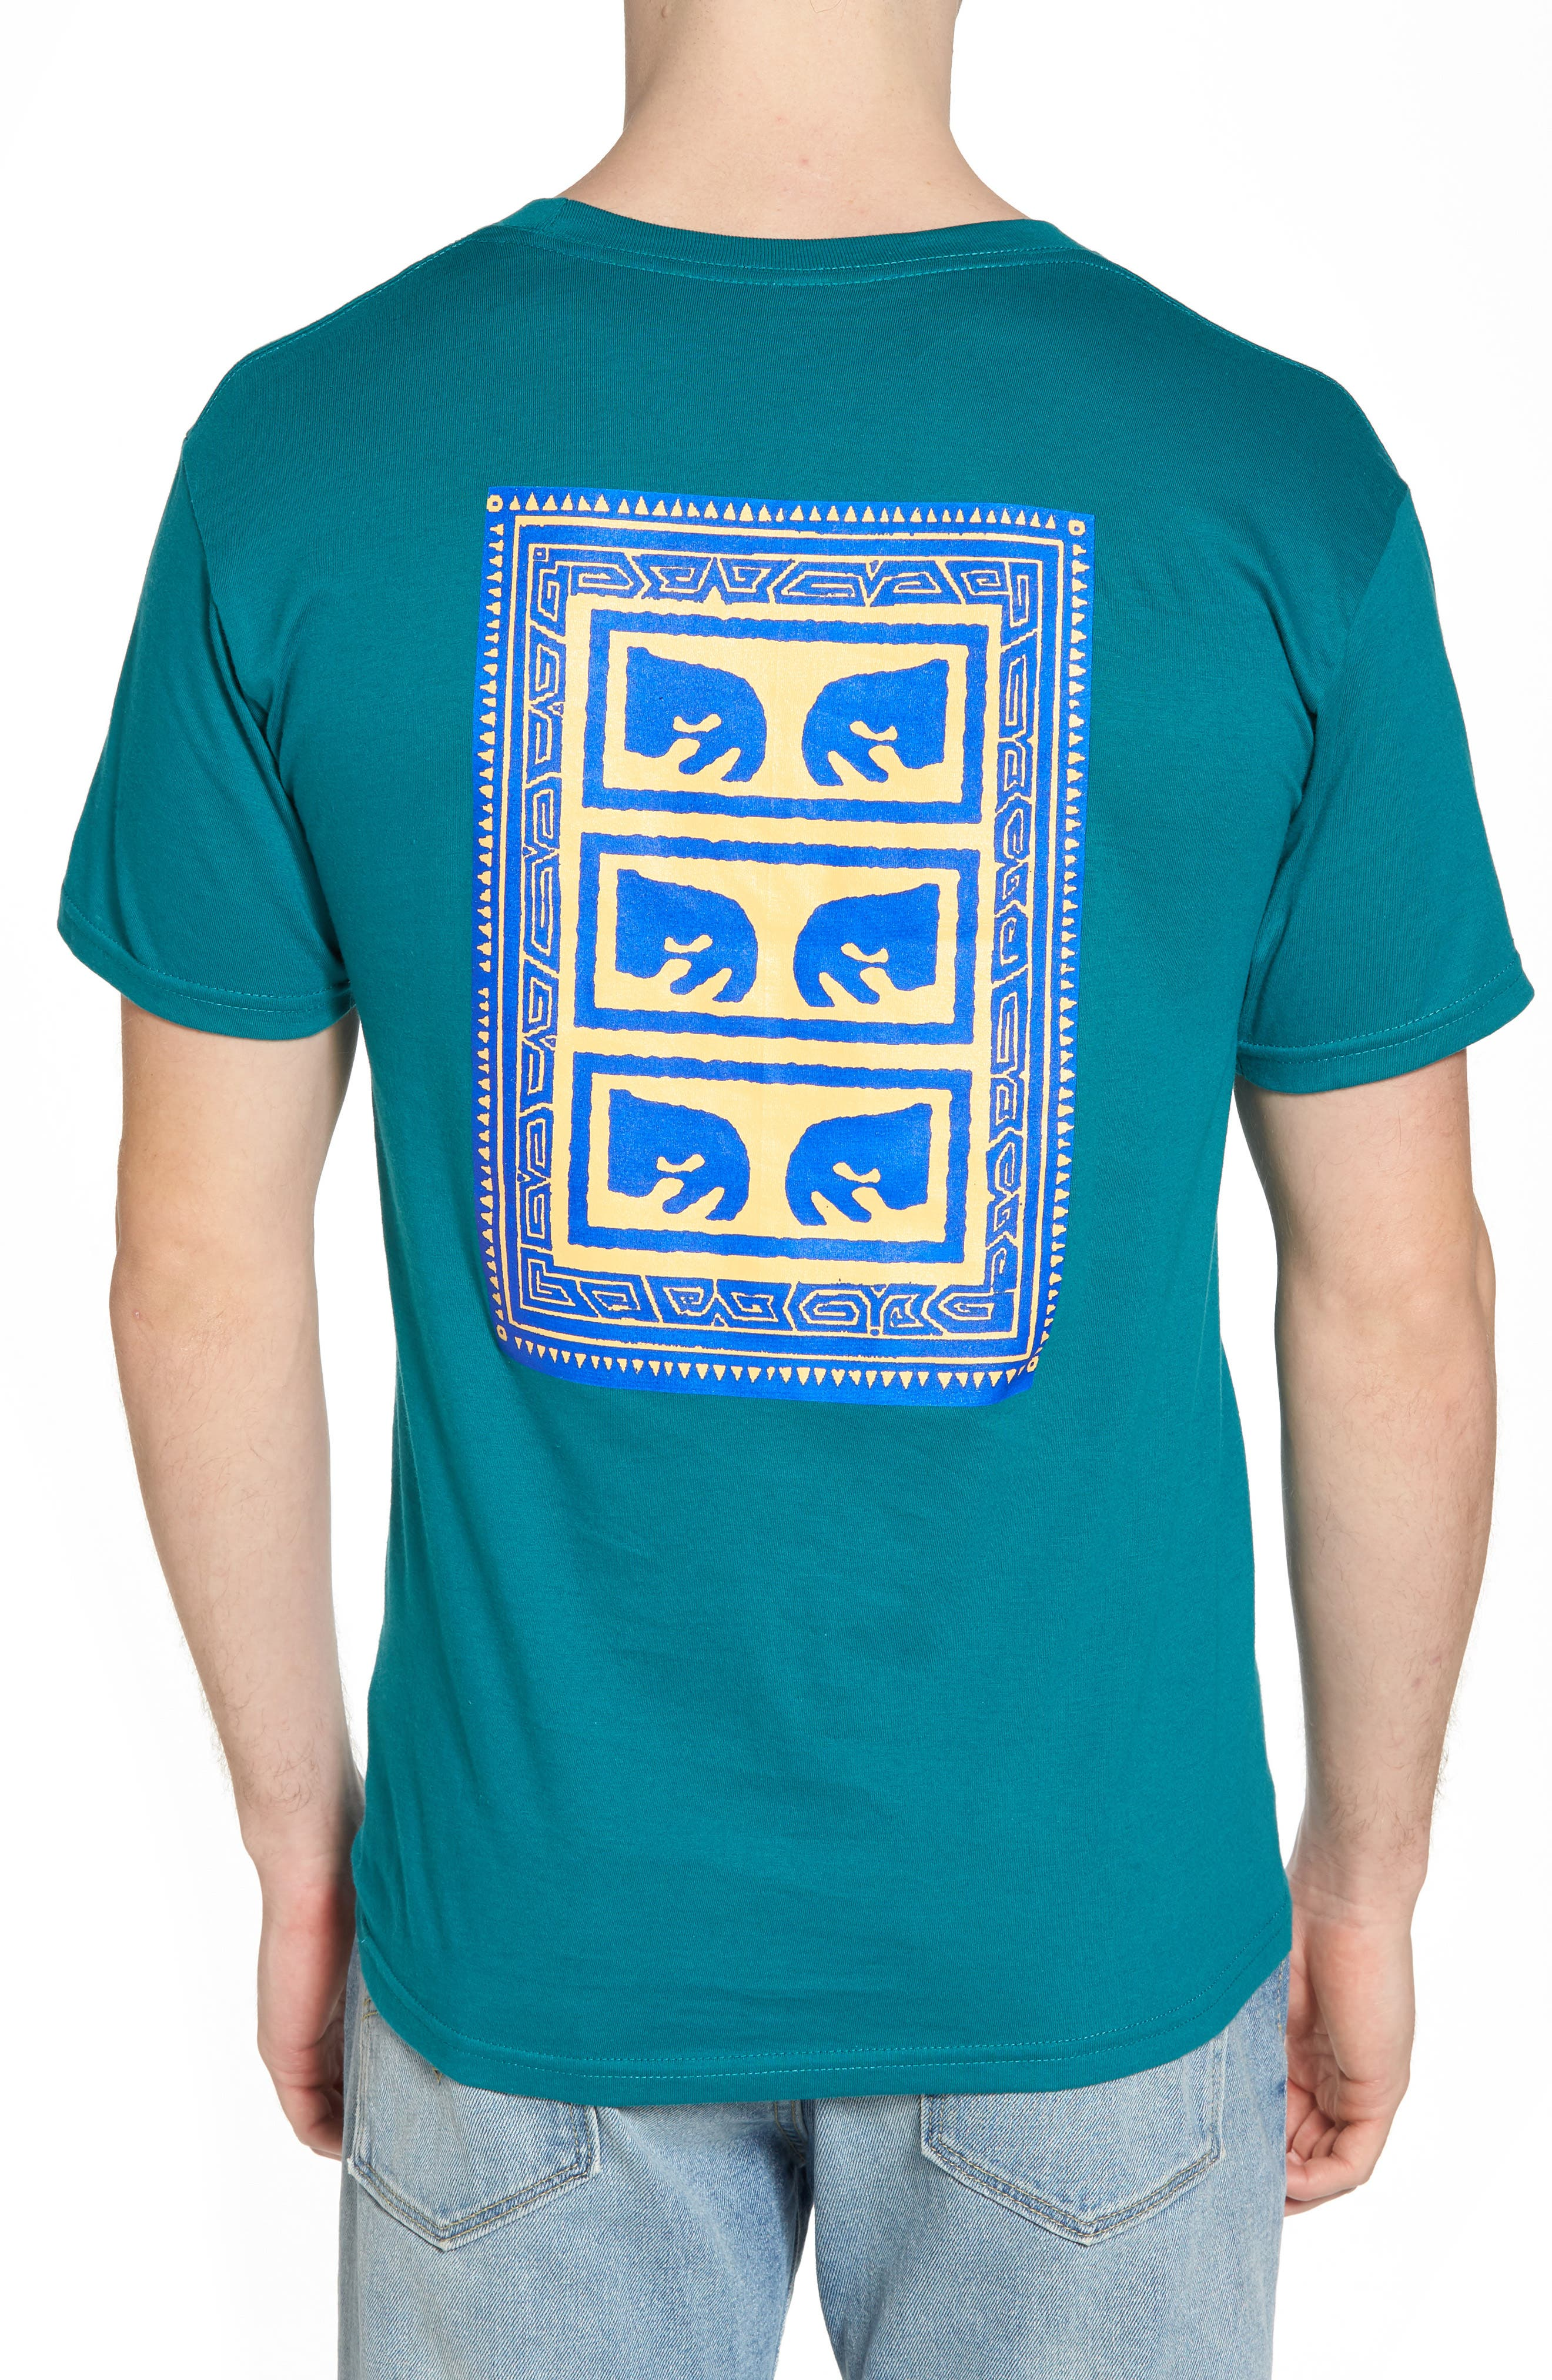 Flashback Graphic T-Shirt,                             Alternate thumbnail 2, color,                             Teal